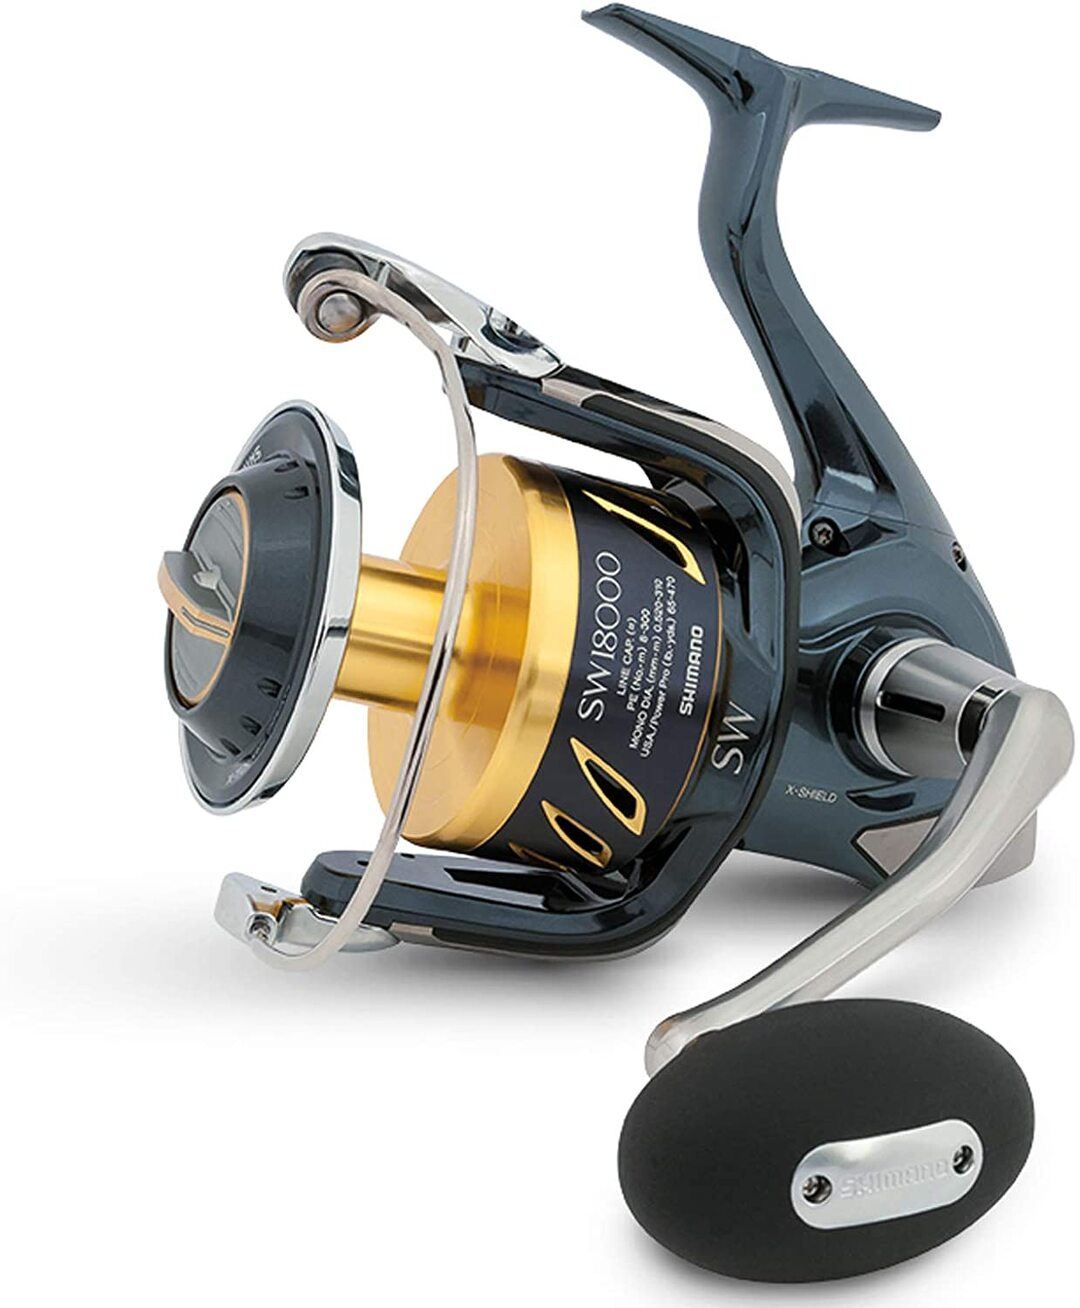 【 🔥LAST DAY ONLY NEED $19.98🔥】LUXURY FISHING GEAR MYSTERY BOX